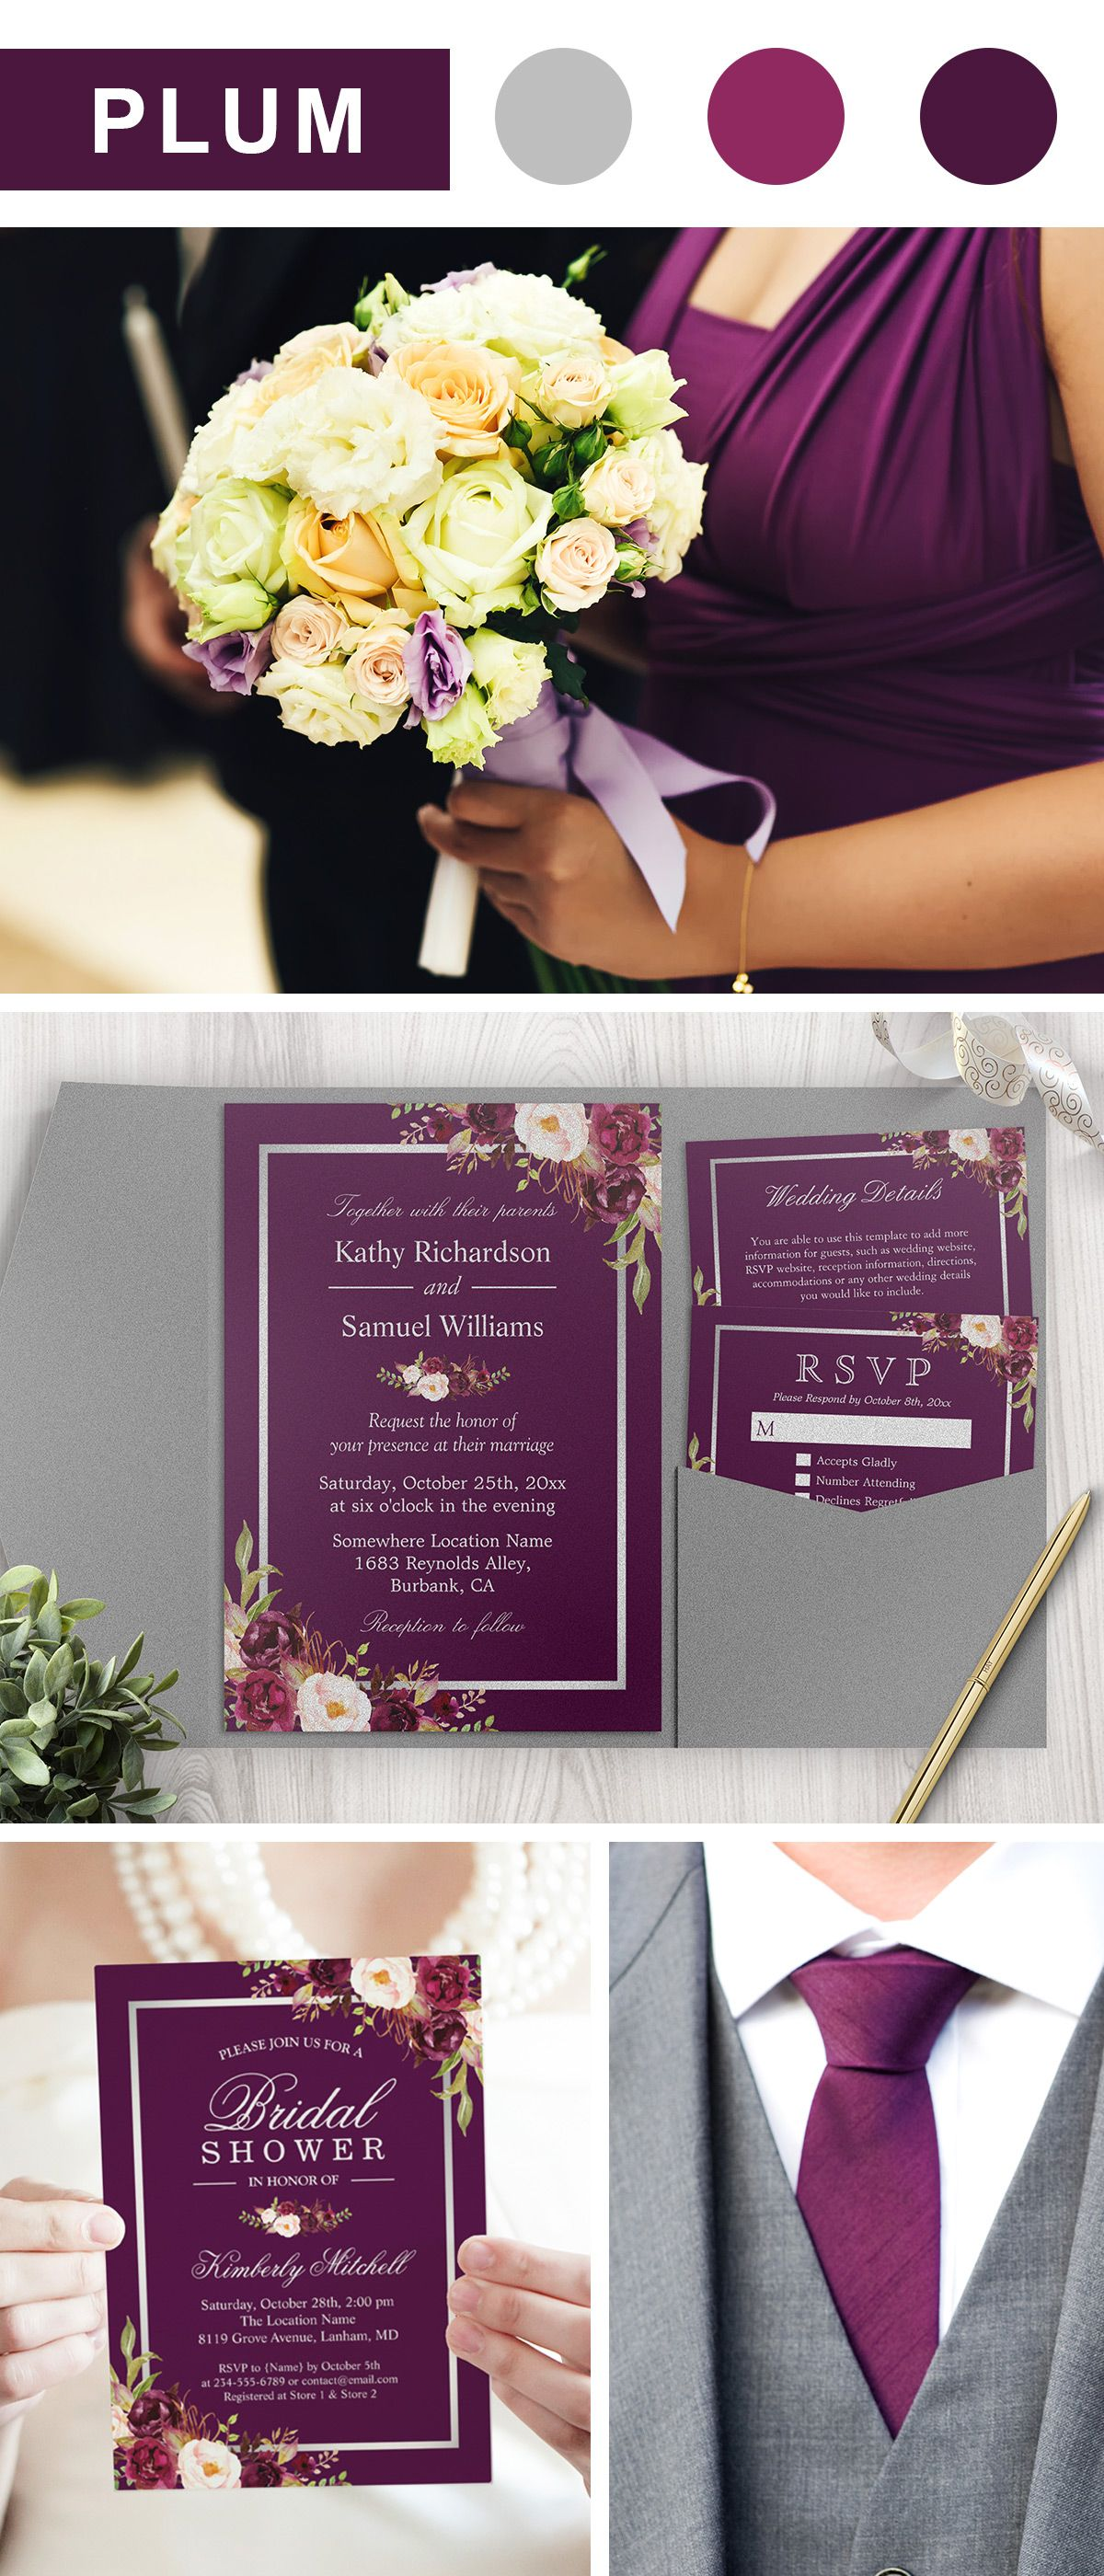 Plum Purple And Silver Gray Wedding Color Ideas And Wedding Invitation Suite For Fall And Winter Wedding Fall Wedding Colors Purple Wedding Plum Wedding